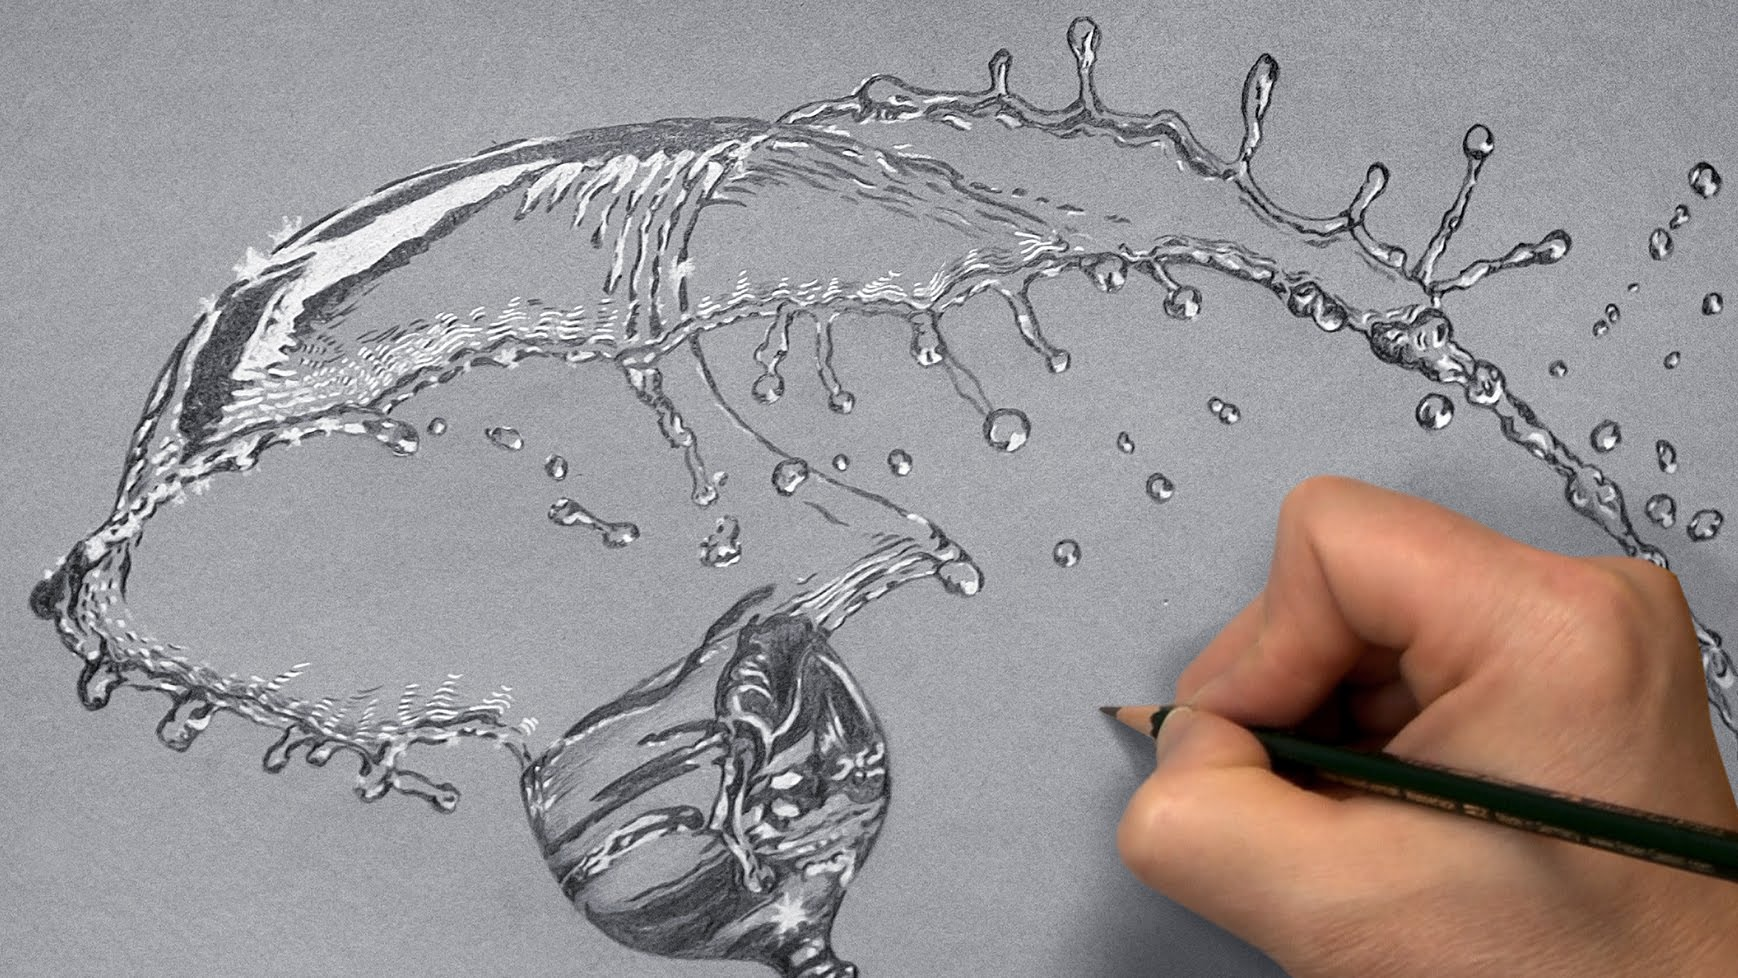 Drawn water Drawing Water I Time draw